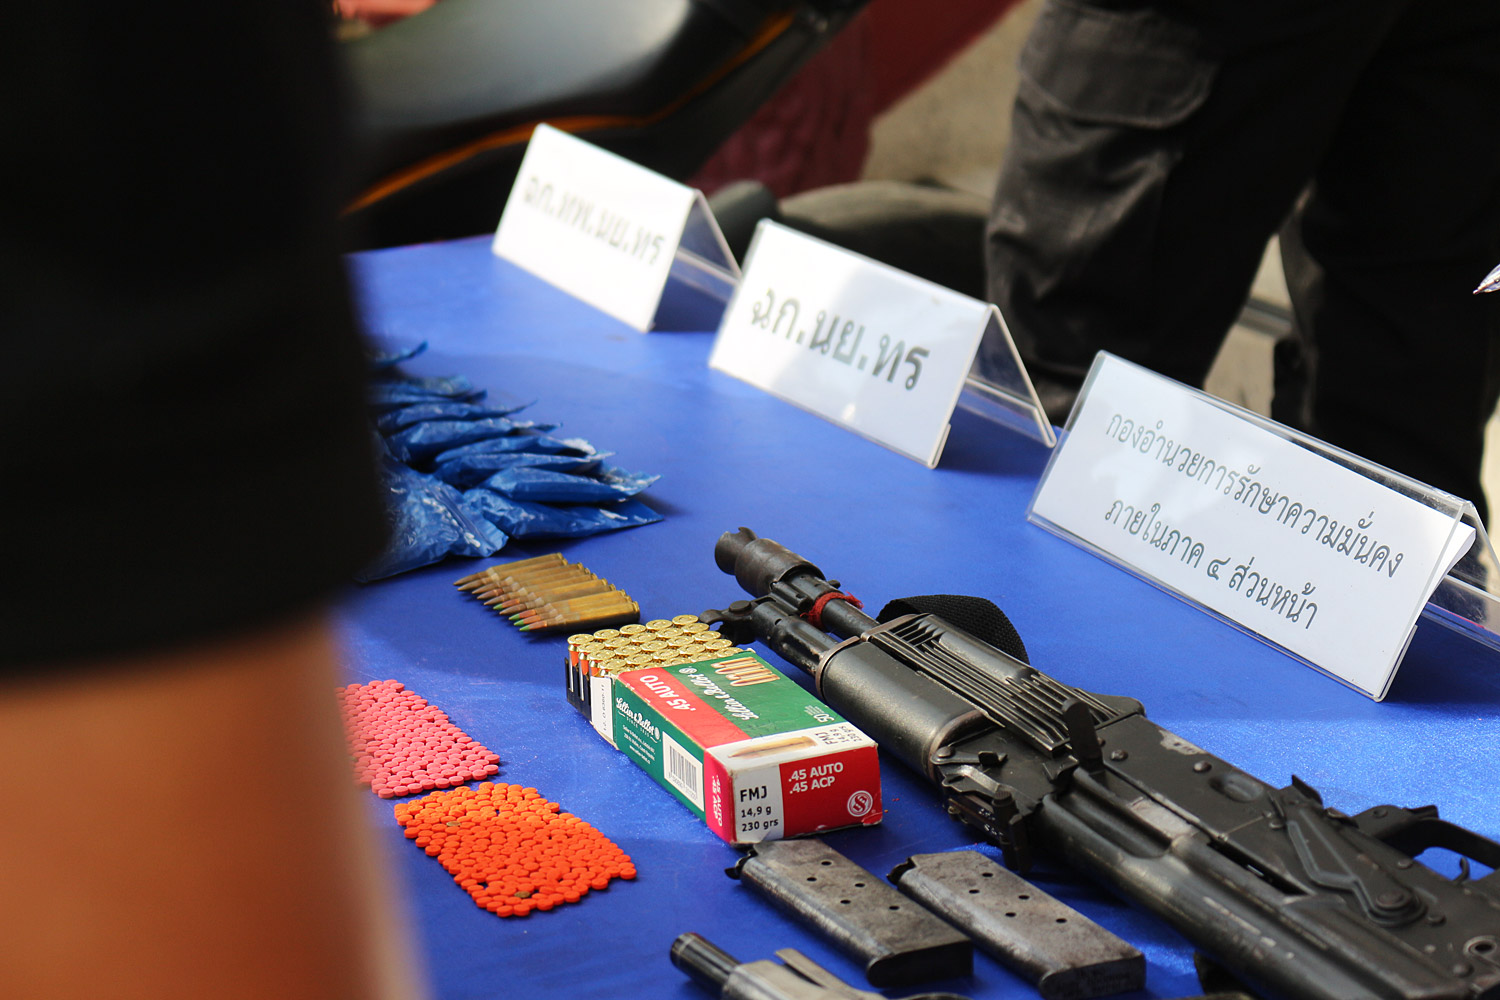 Meth pills and weapons were seized in Narathiwat on Sunday. (Photo by Waedao Harai)